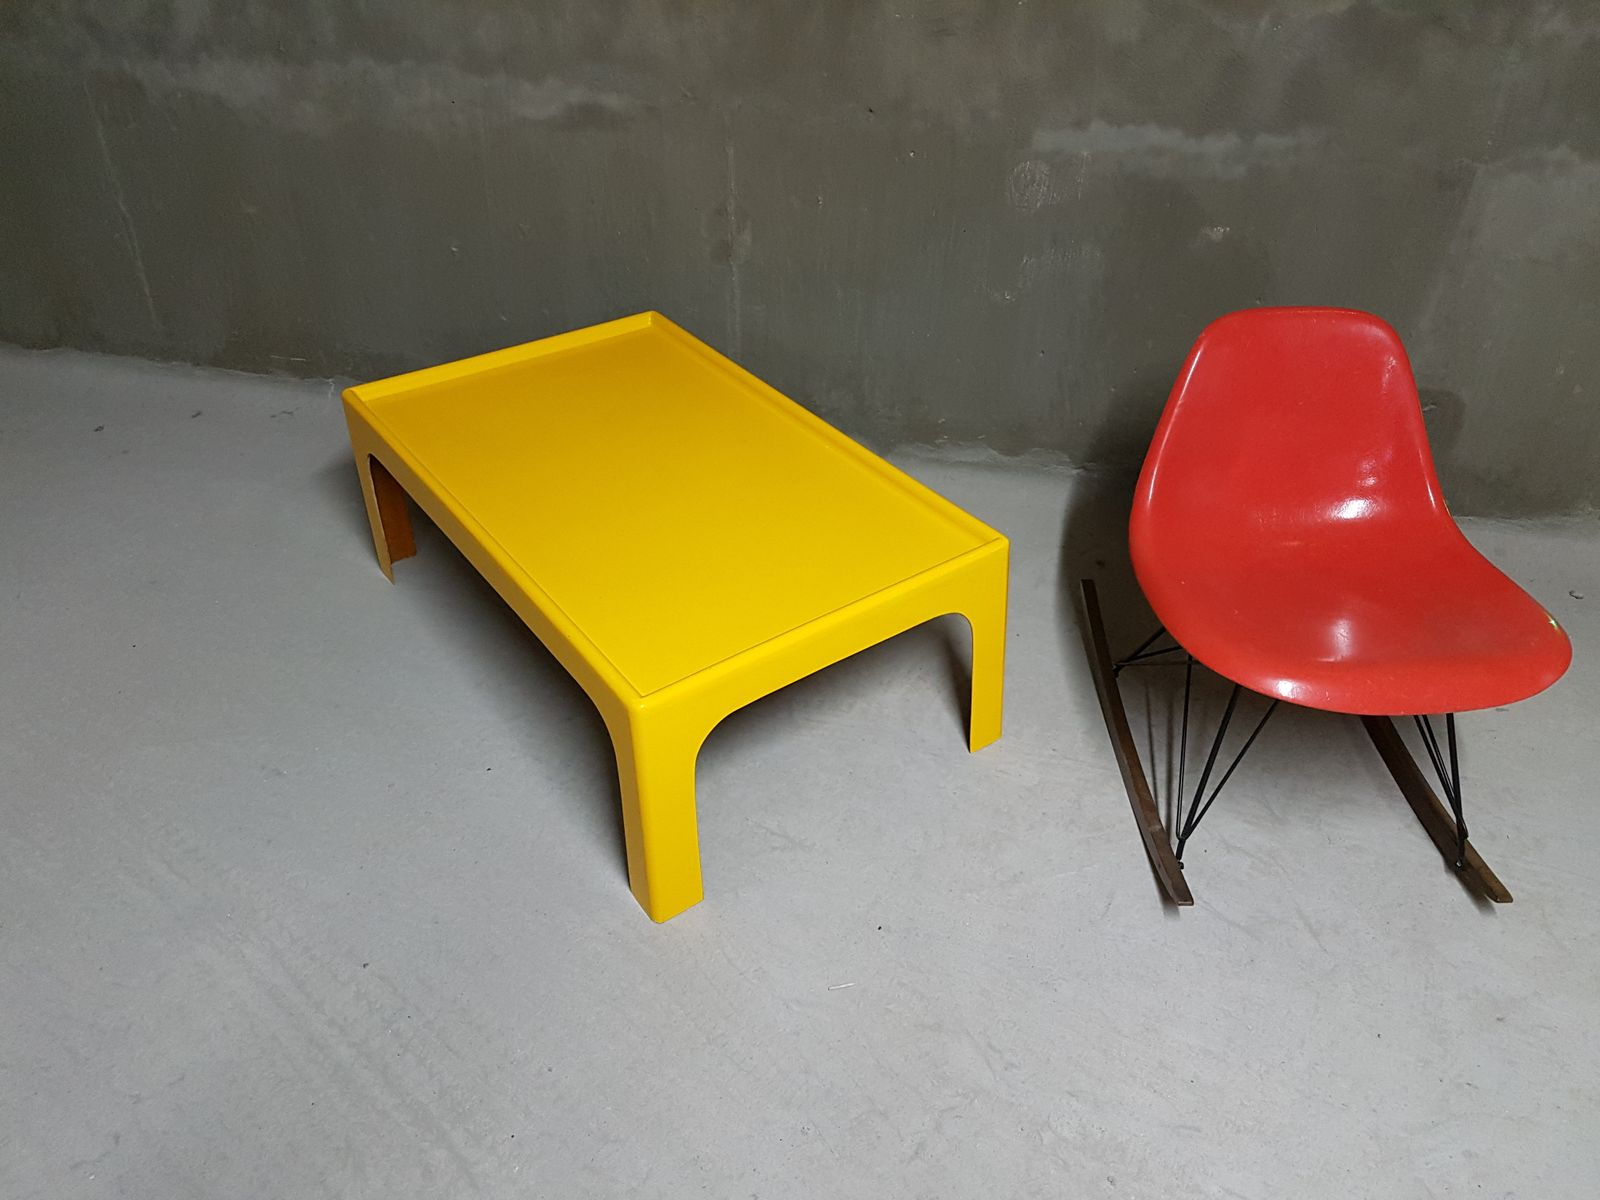 vintage yellow fiberglass coffee table by marc held for sale at pamono - price per piece